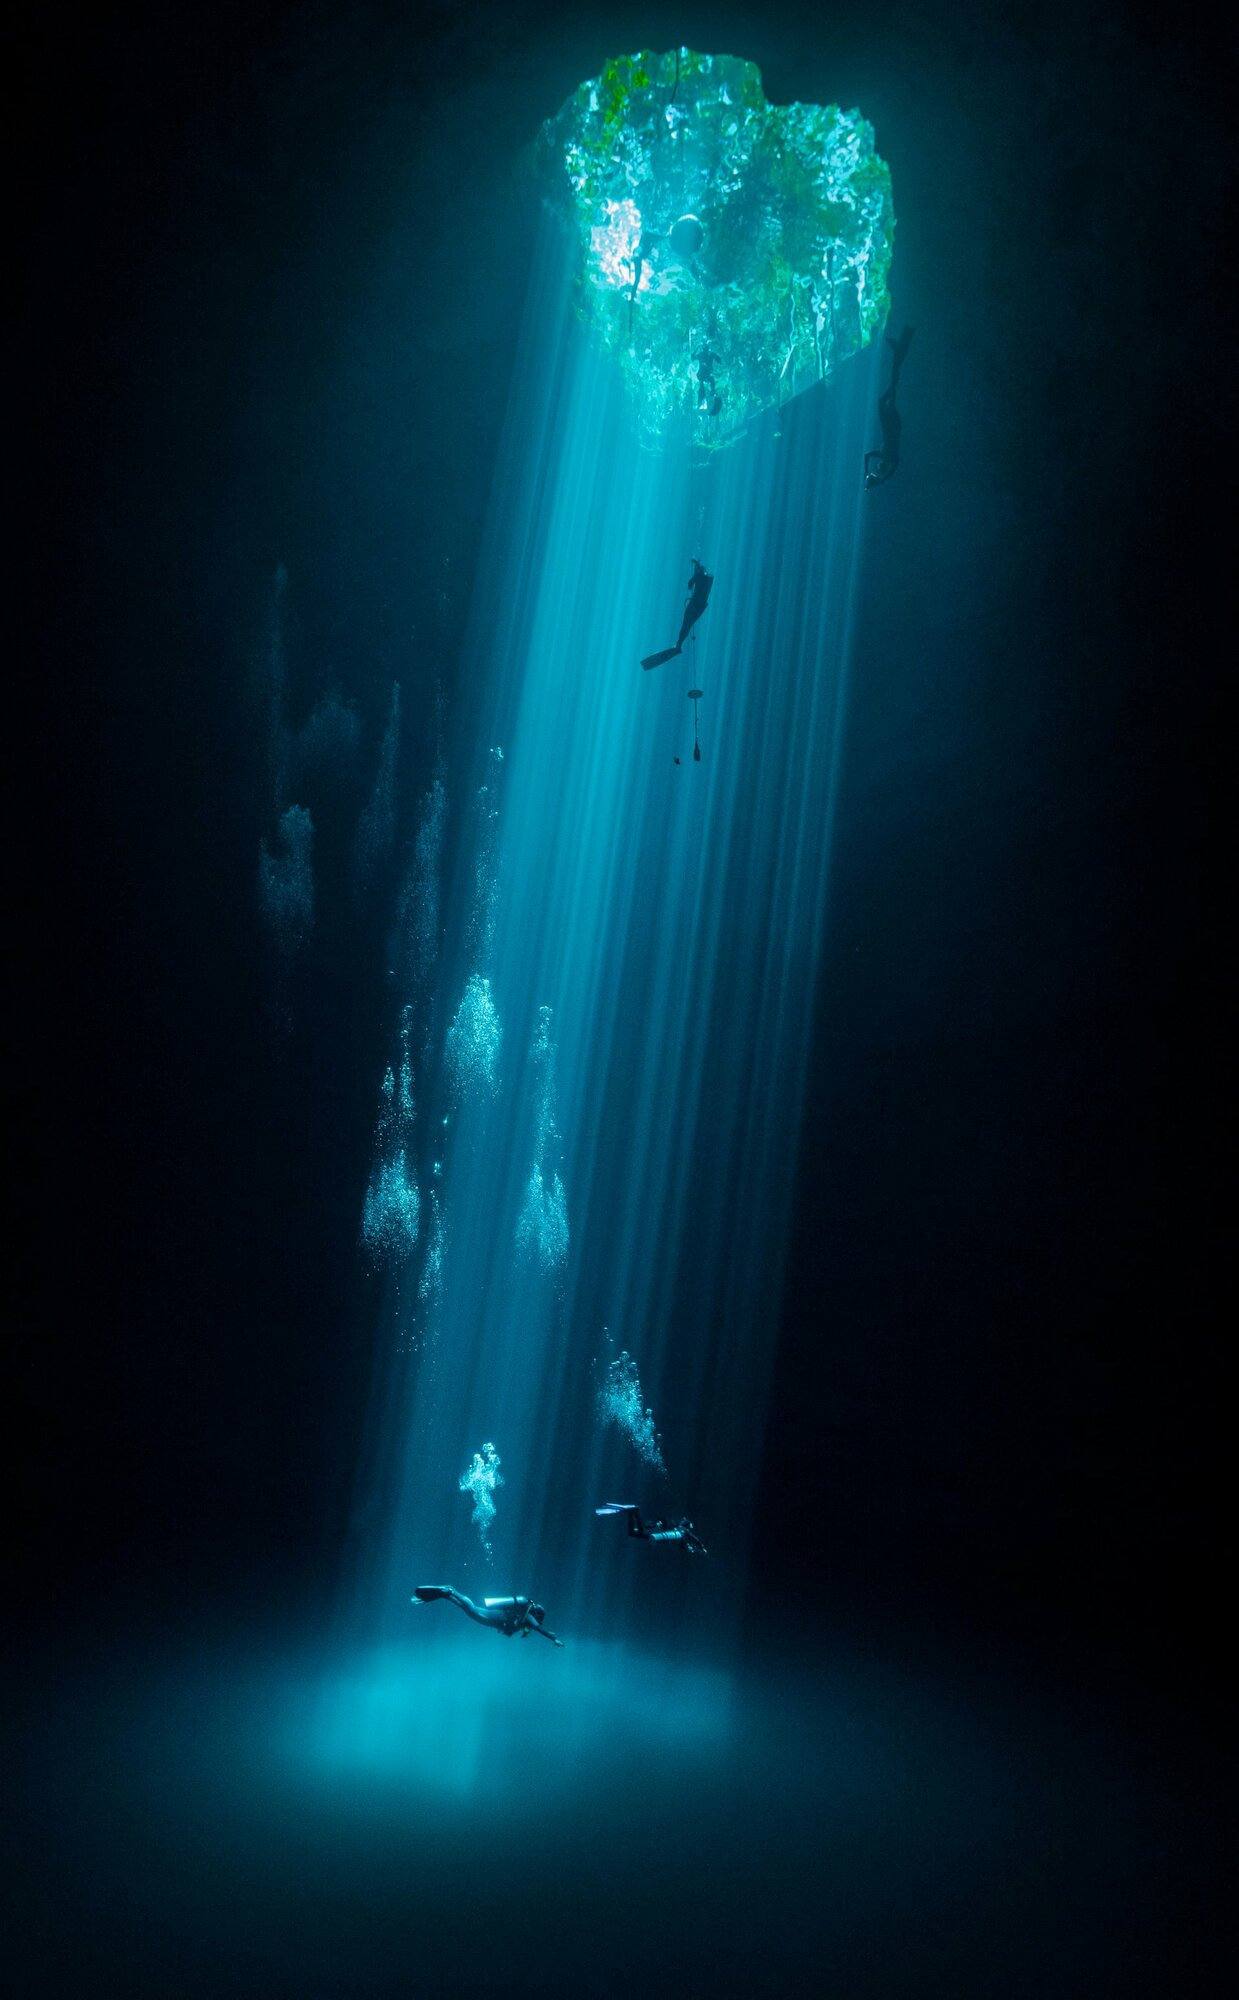 Water second place: Joram Mennes, MexicoThree levels of leisure: swimmers, freedivers and divers enjoy their respective sport and recreational activities in a fresh water mass known locally as the CenotesPhotograph: Joram Mennes/TNC photo contest 2021